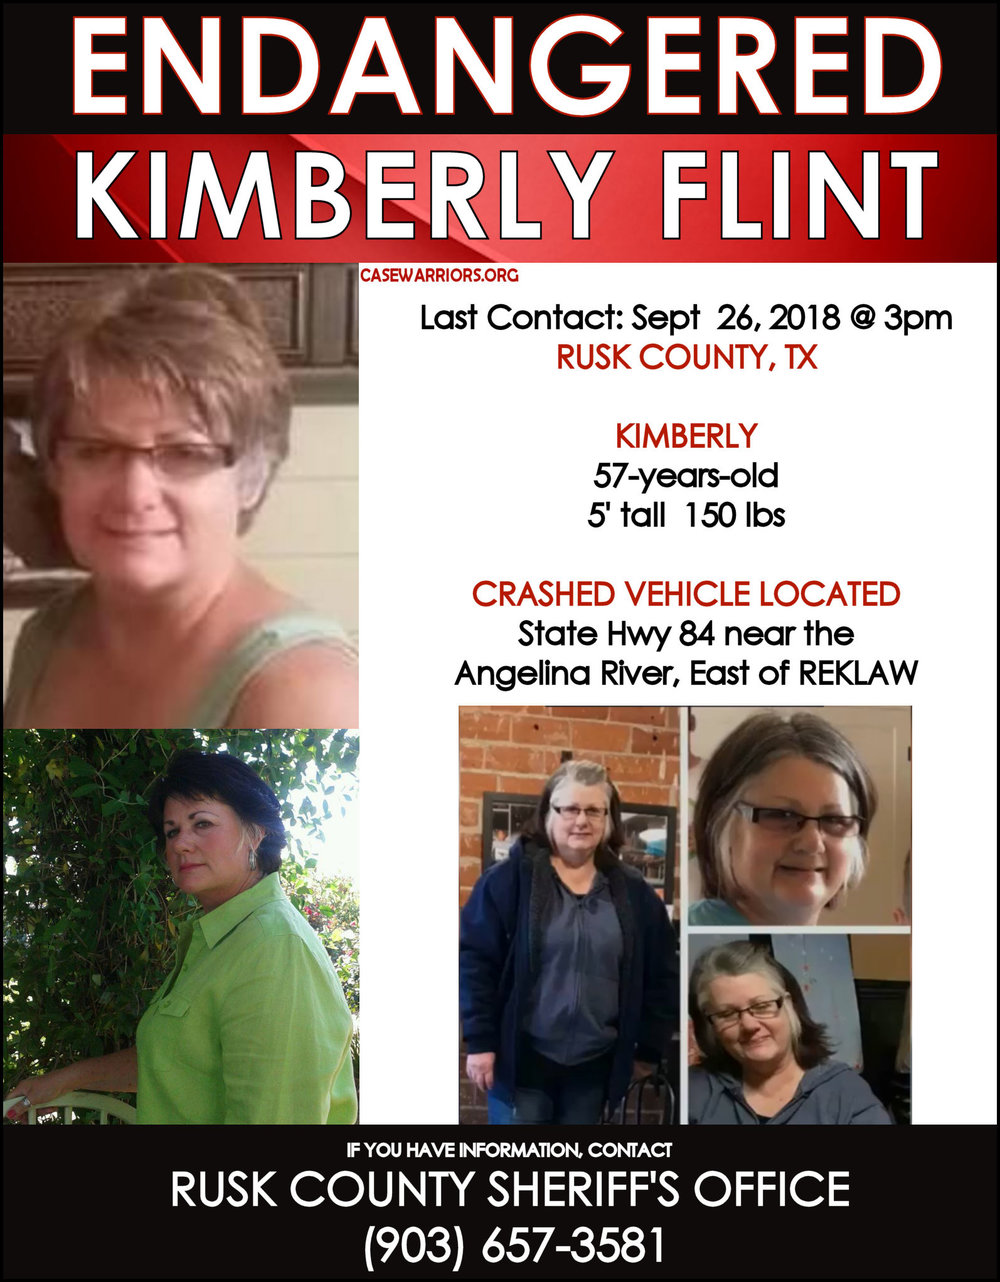 KIMBERLY FLINT